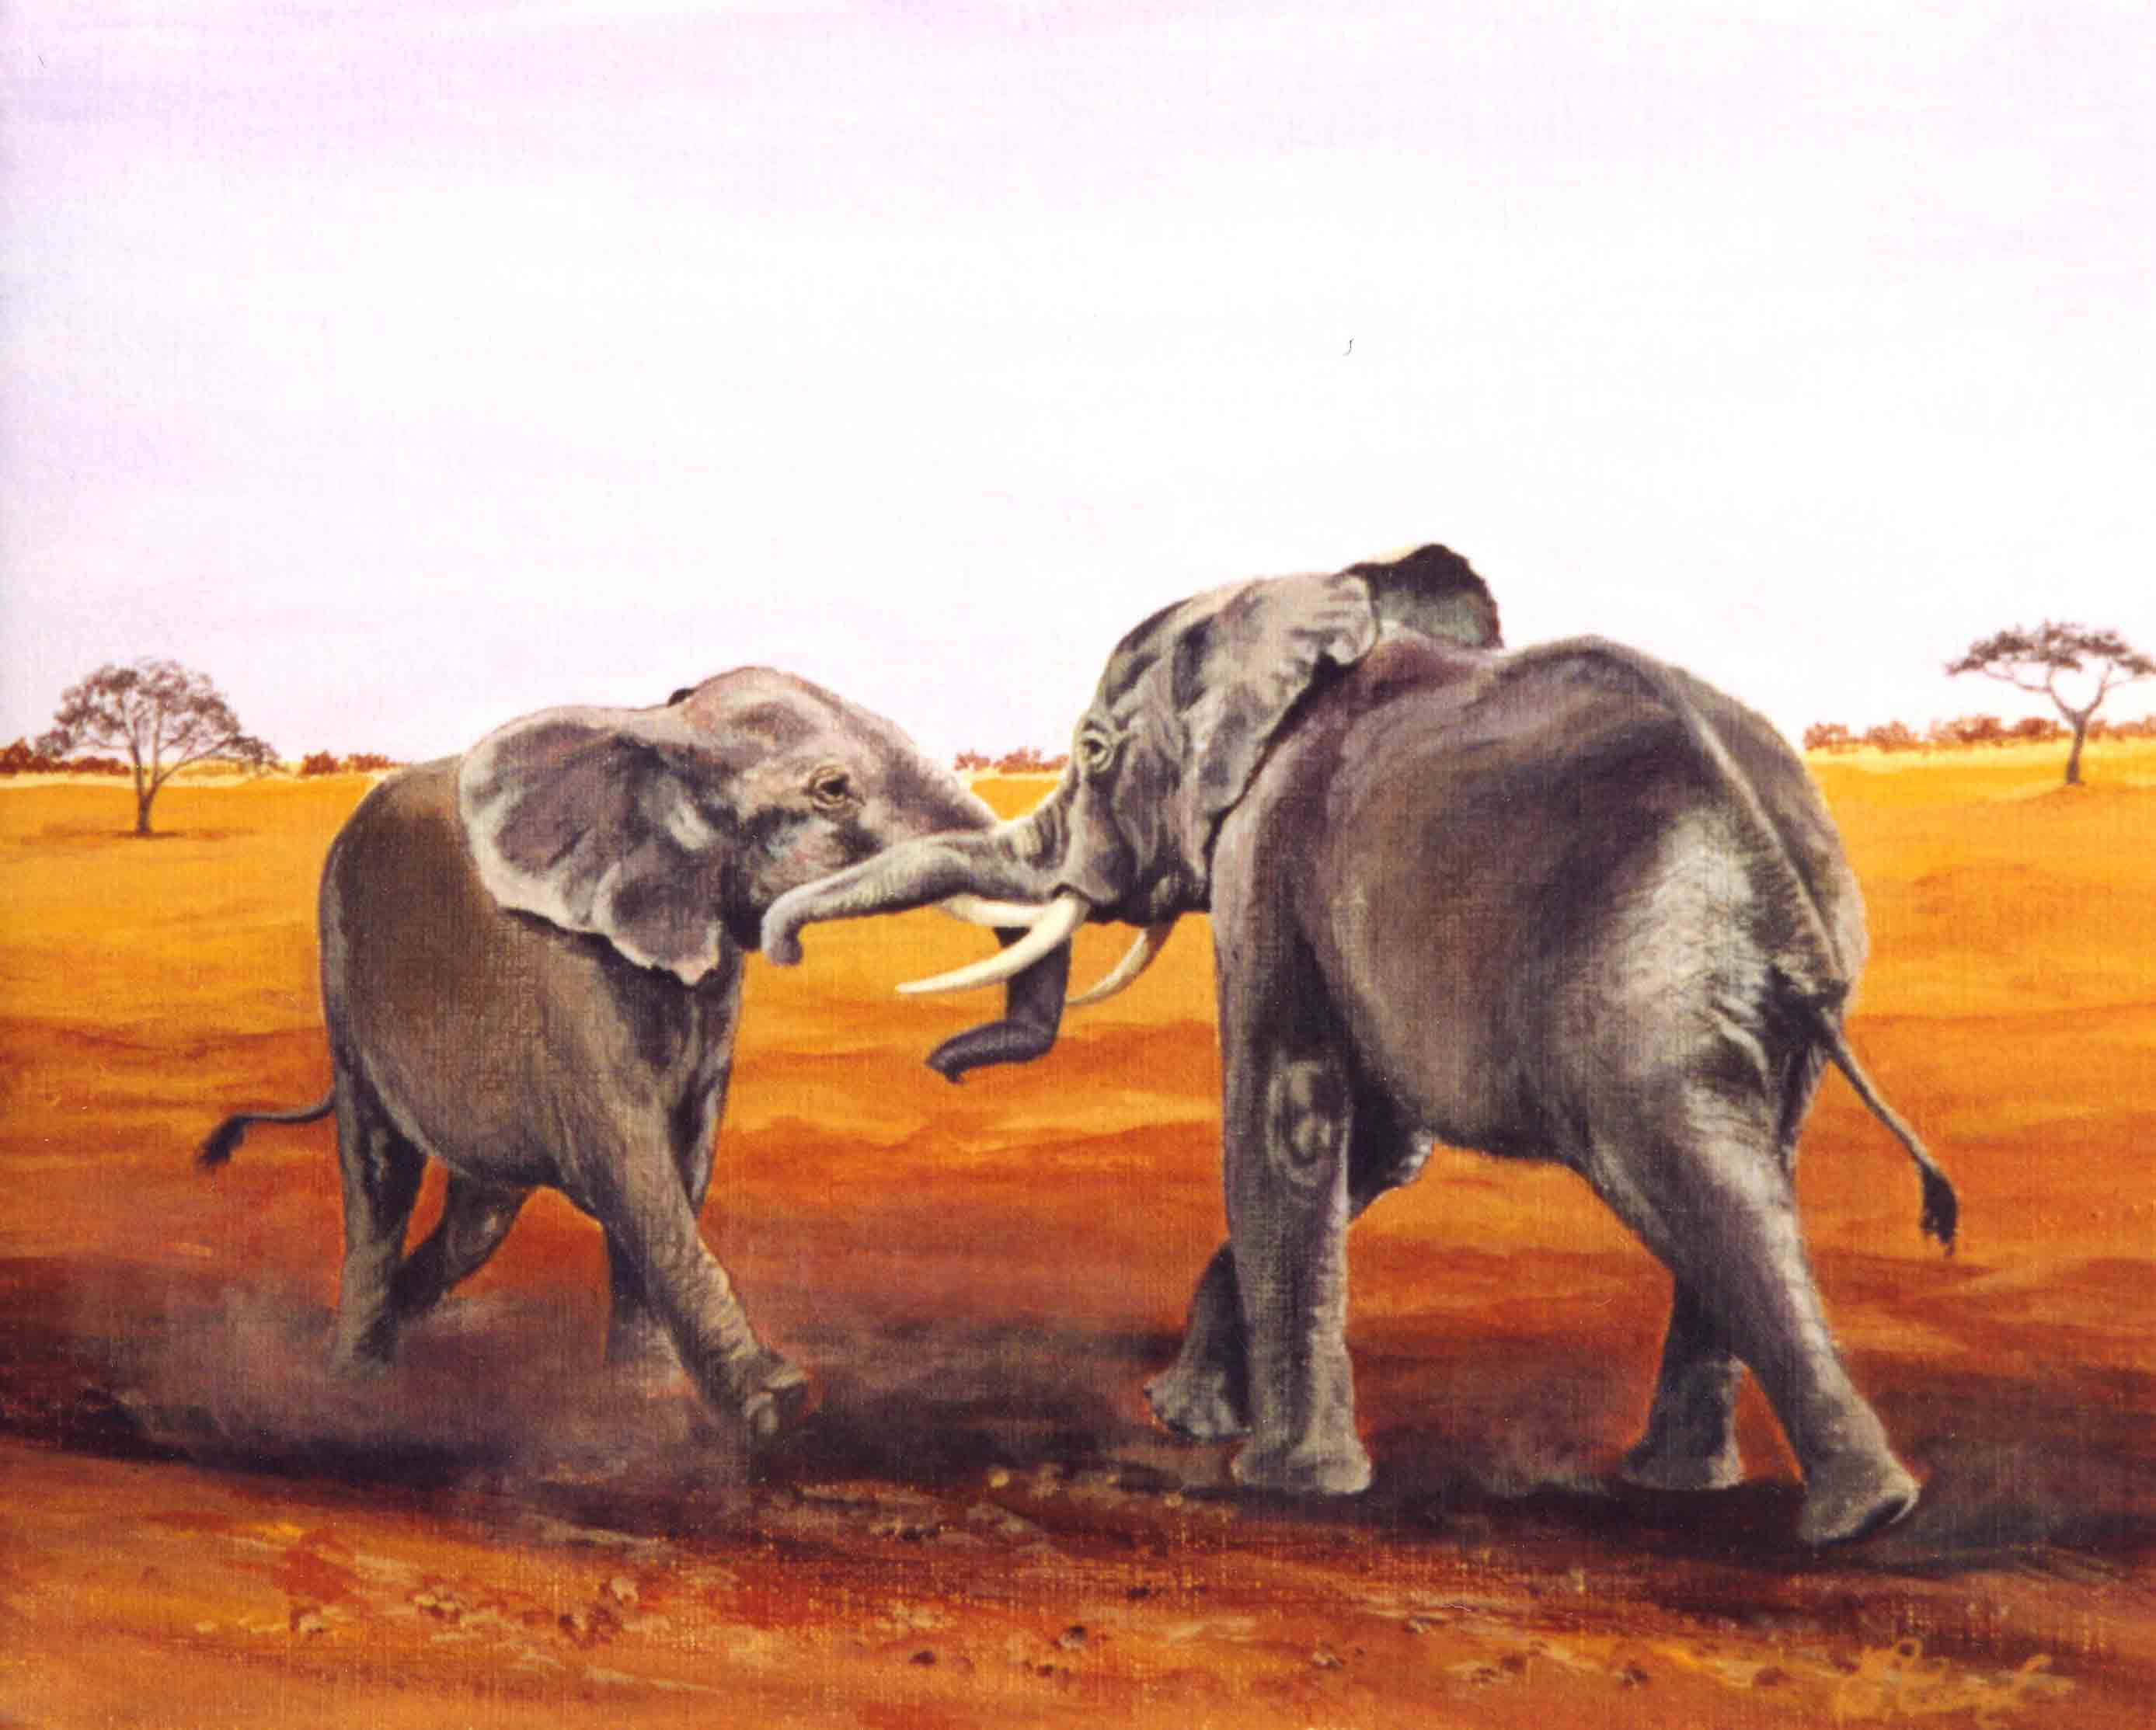 Elephants pl